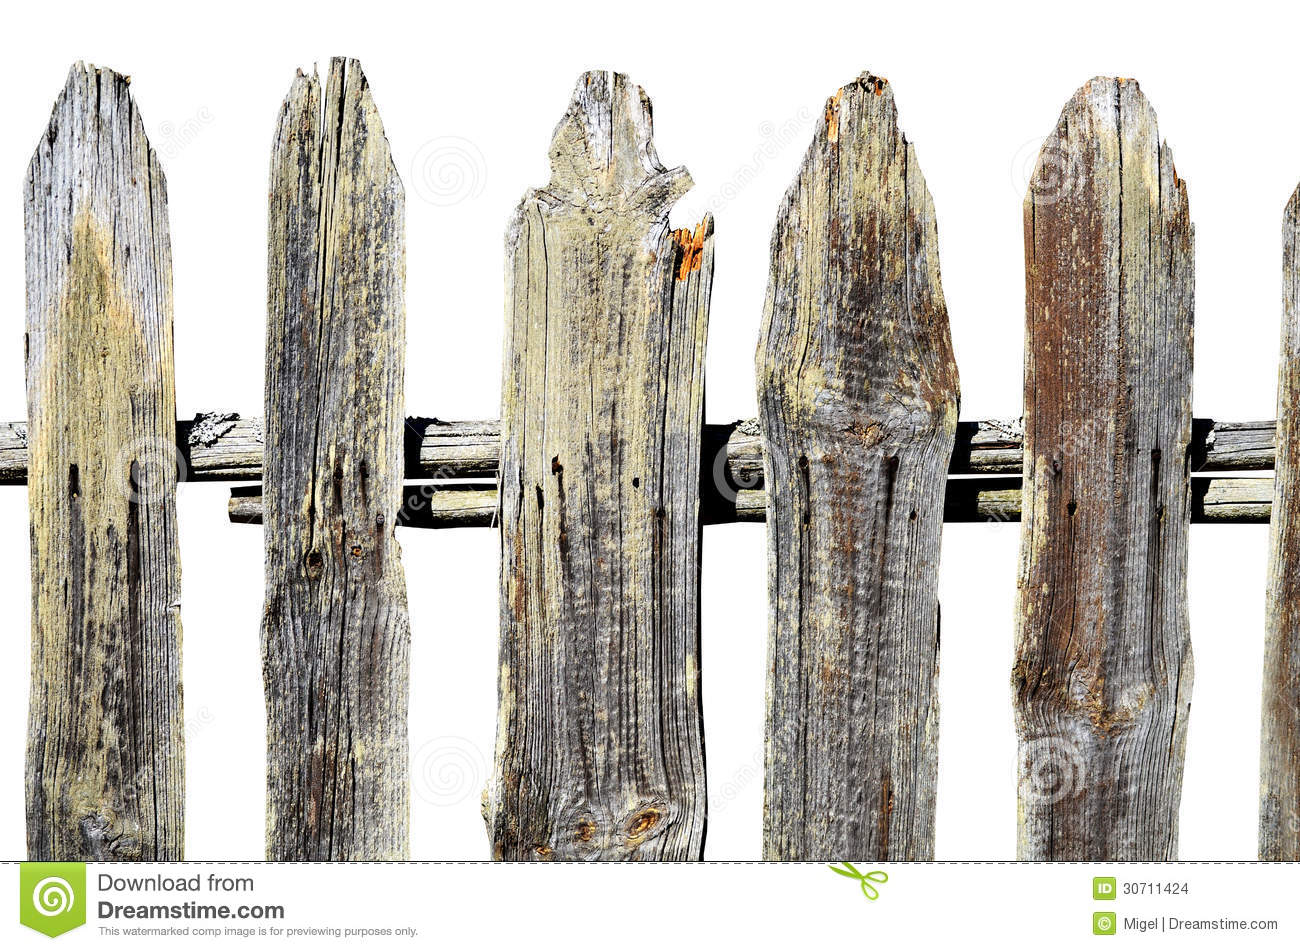 Vieille barri re en bois photo stock image du objet 30711424 - Barriere en bois ...